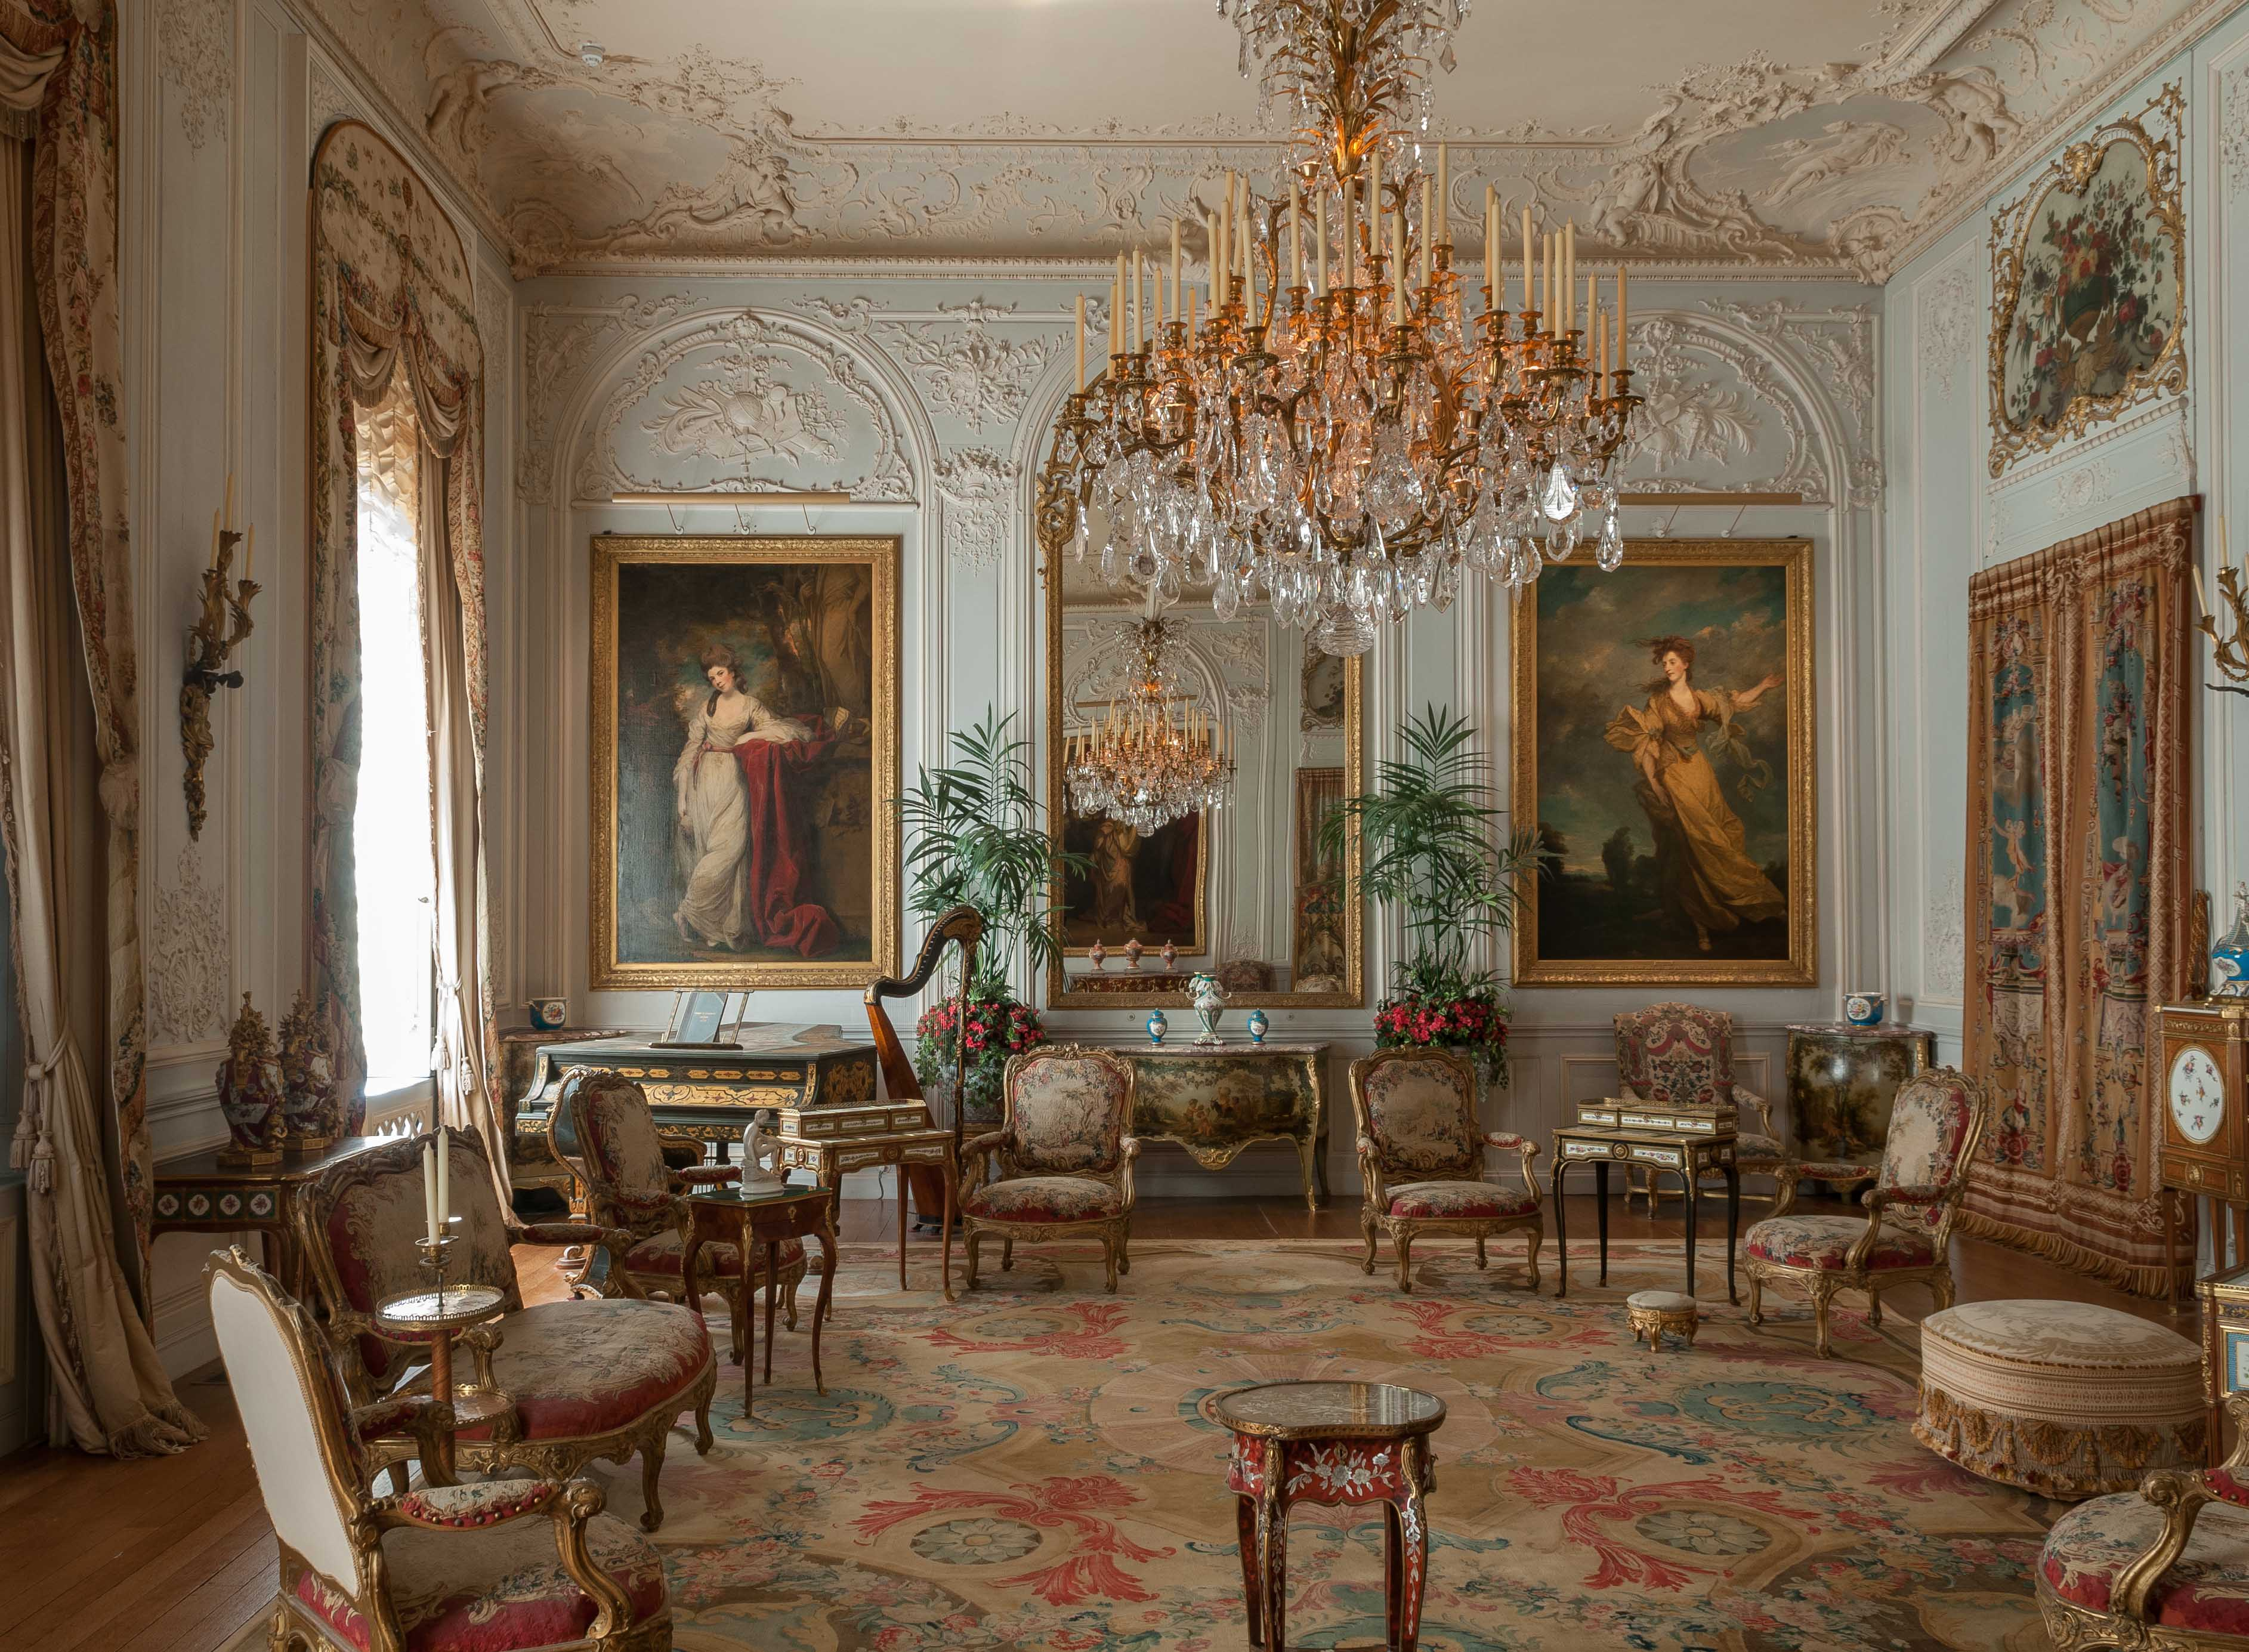 6 Grey Drawing Room Waddesdon Manor Photo by Mike Fear